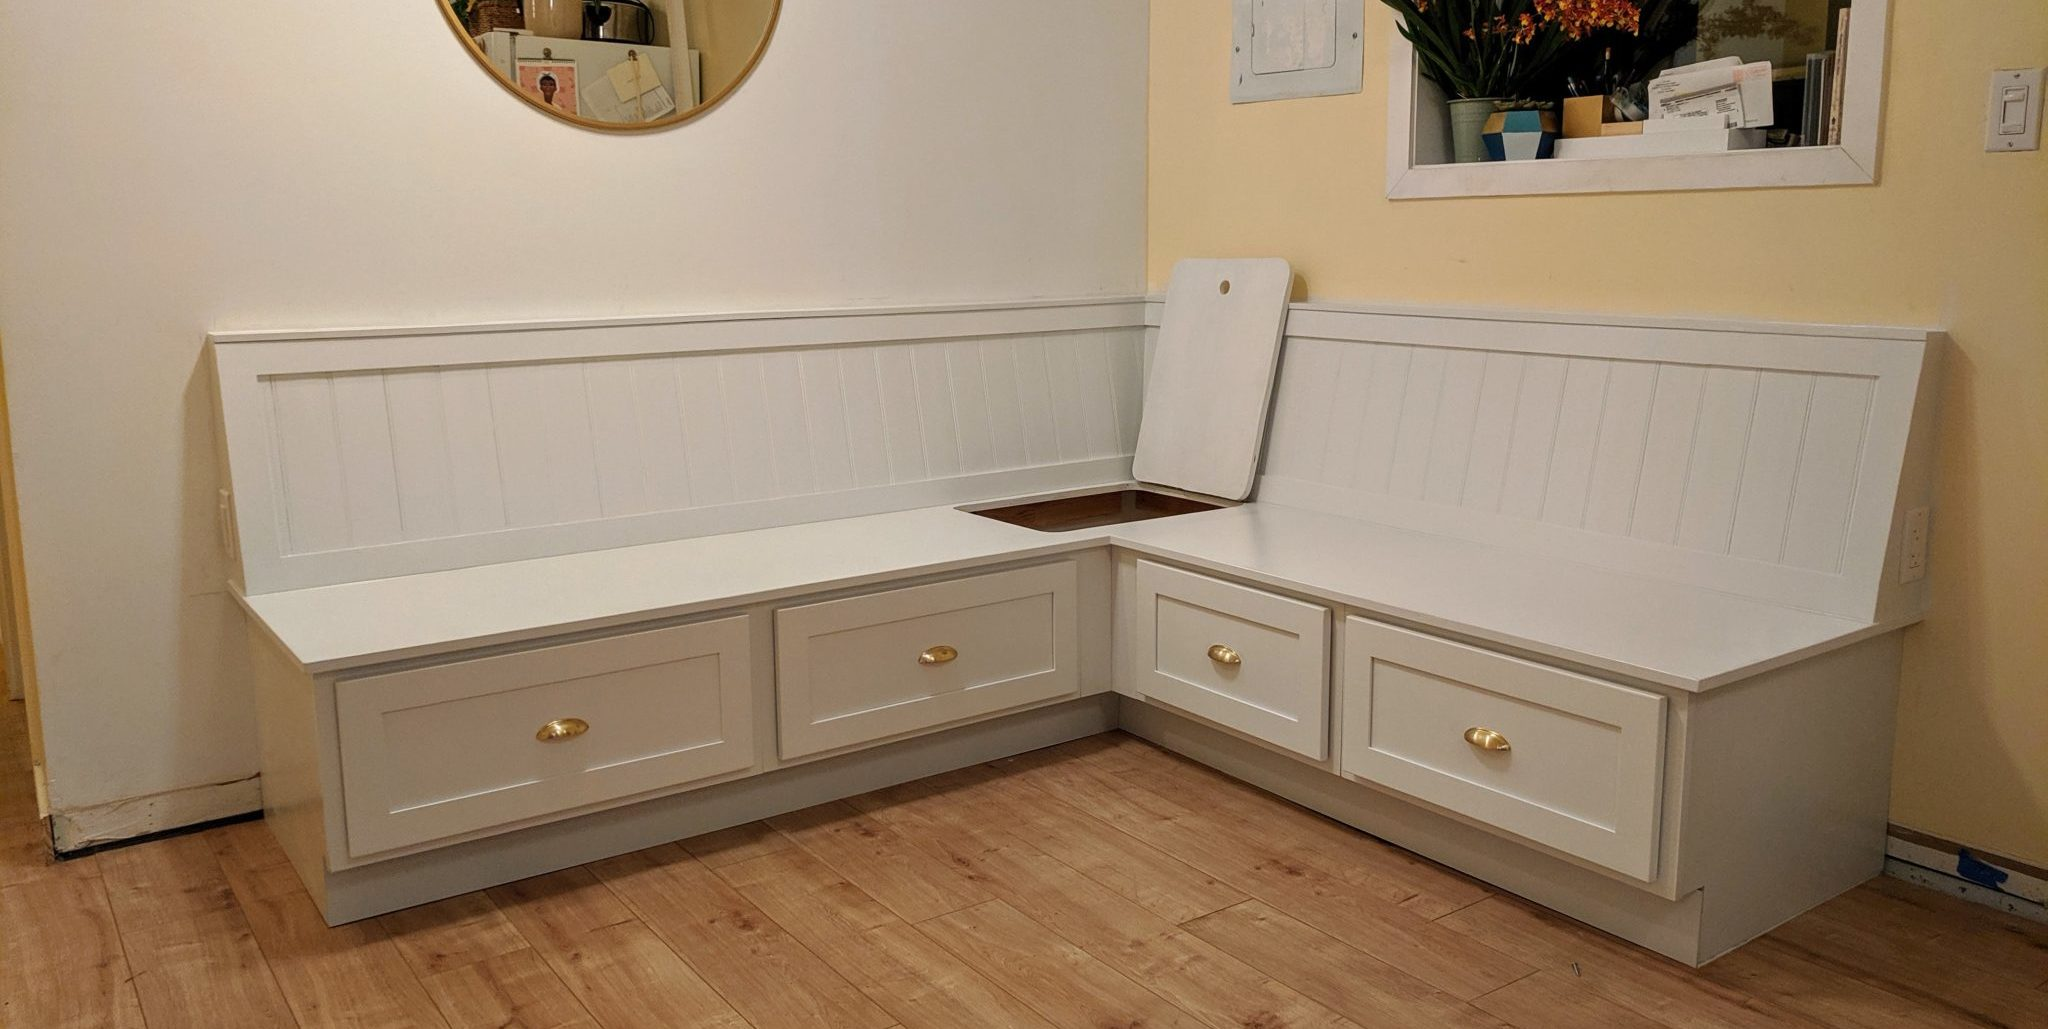 Picture of: How To Build Banquette Bench Seating Mickey Kay